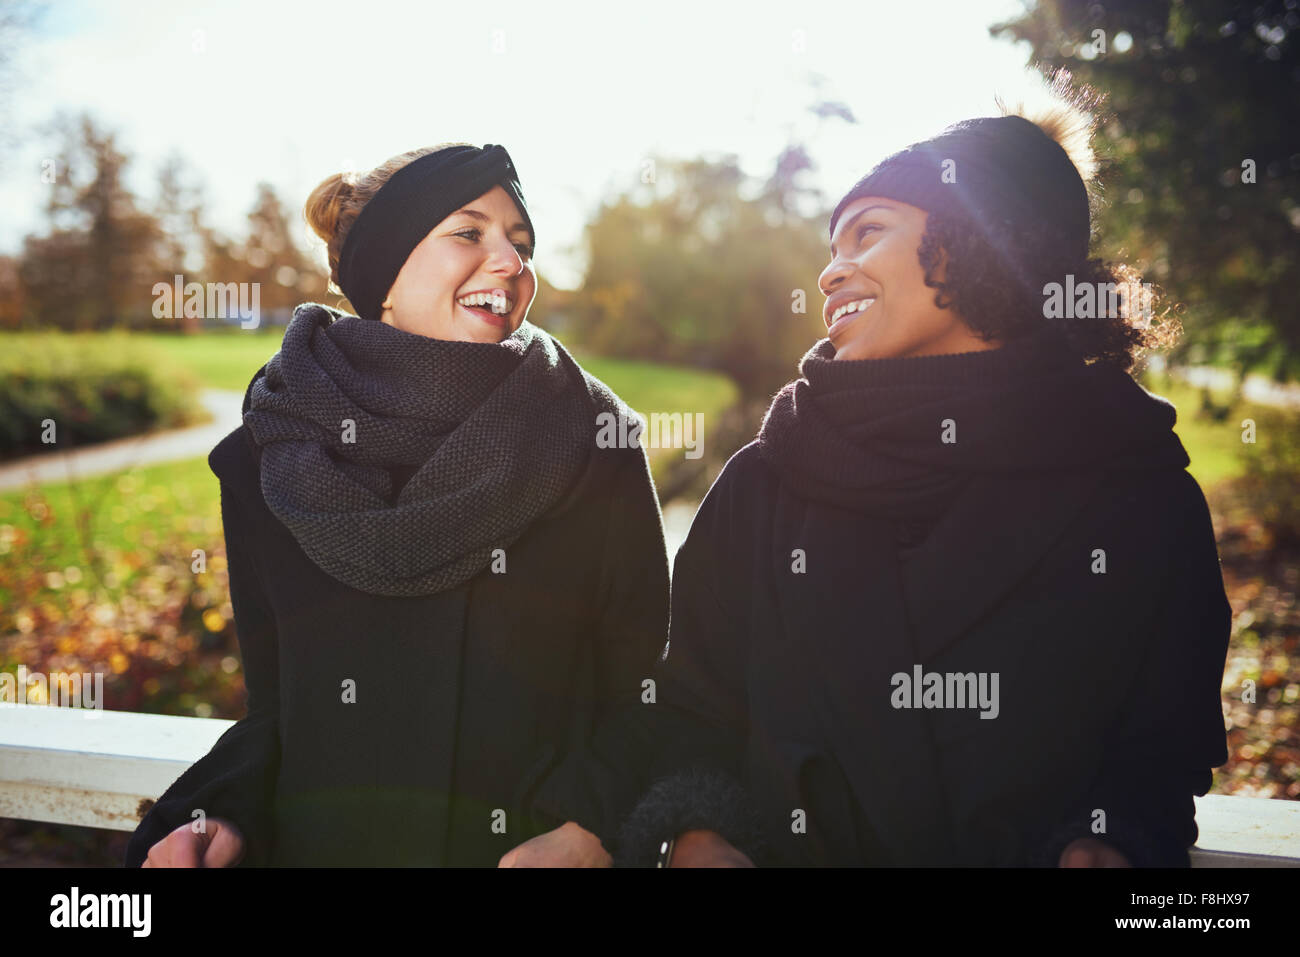 Two women in warm clothes standing on bridge in park and smiling at each other - Stock Image